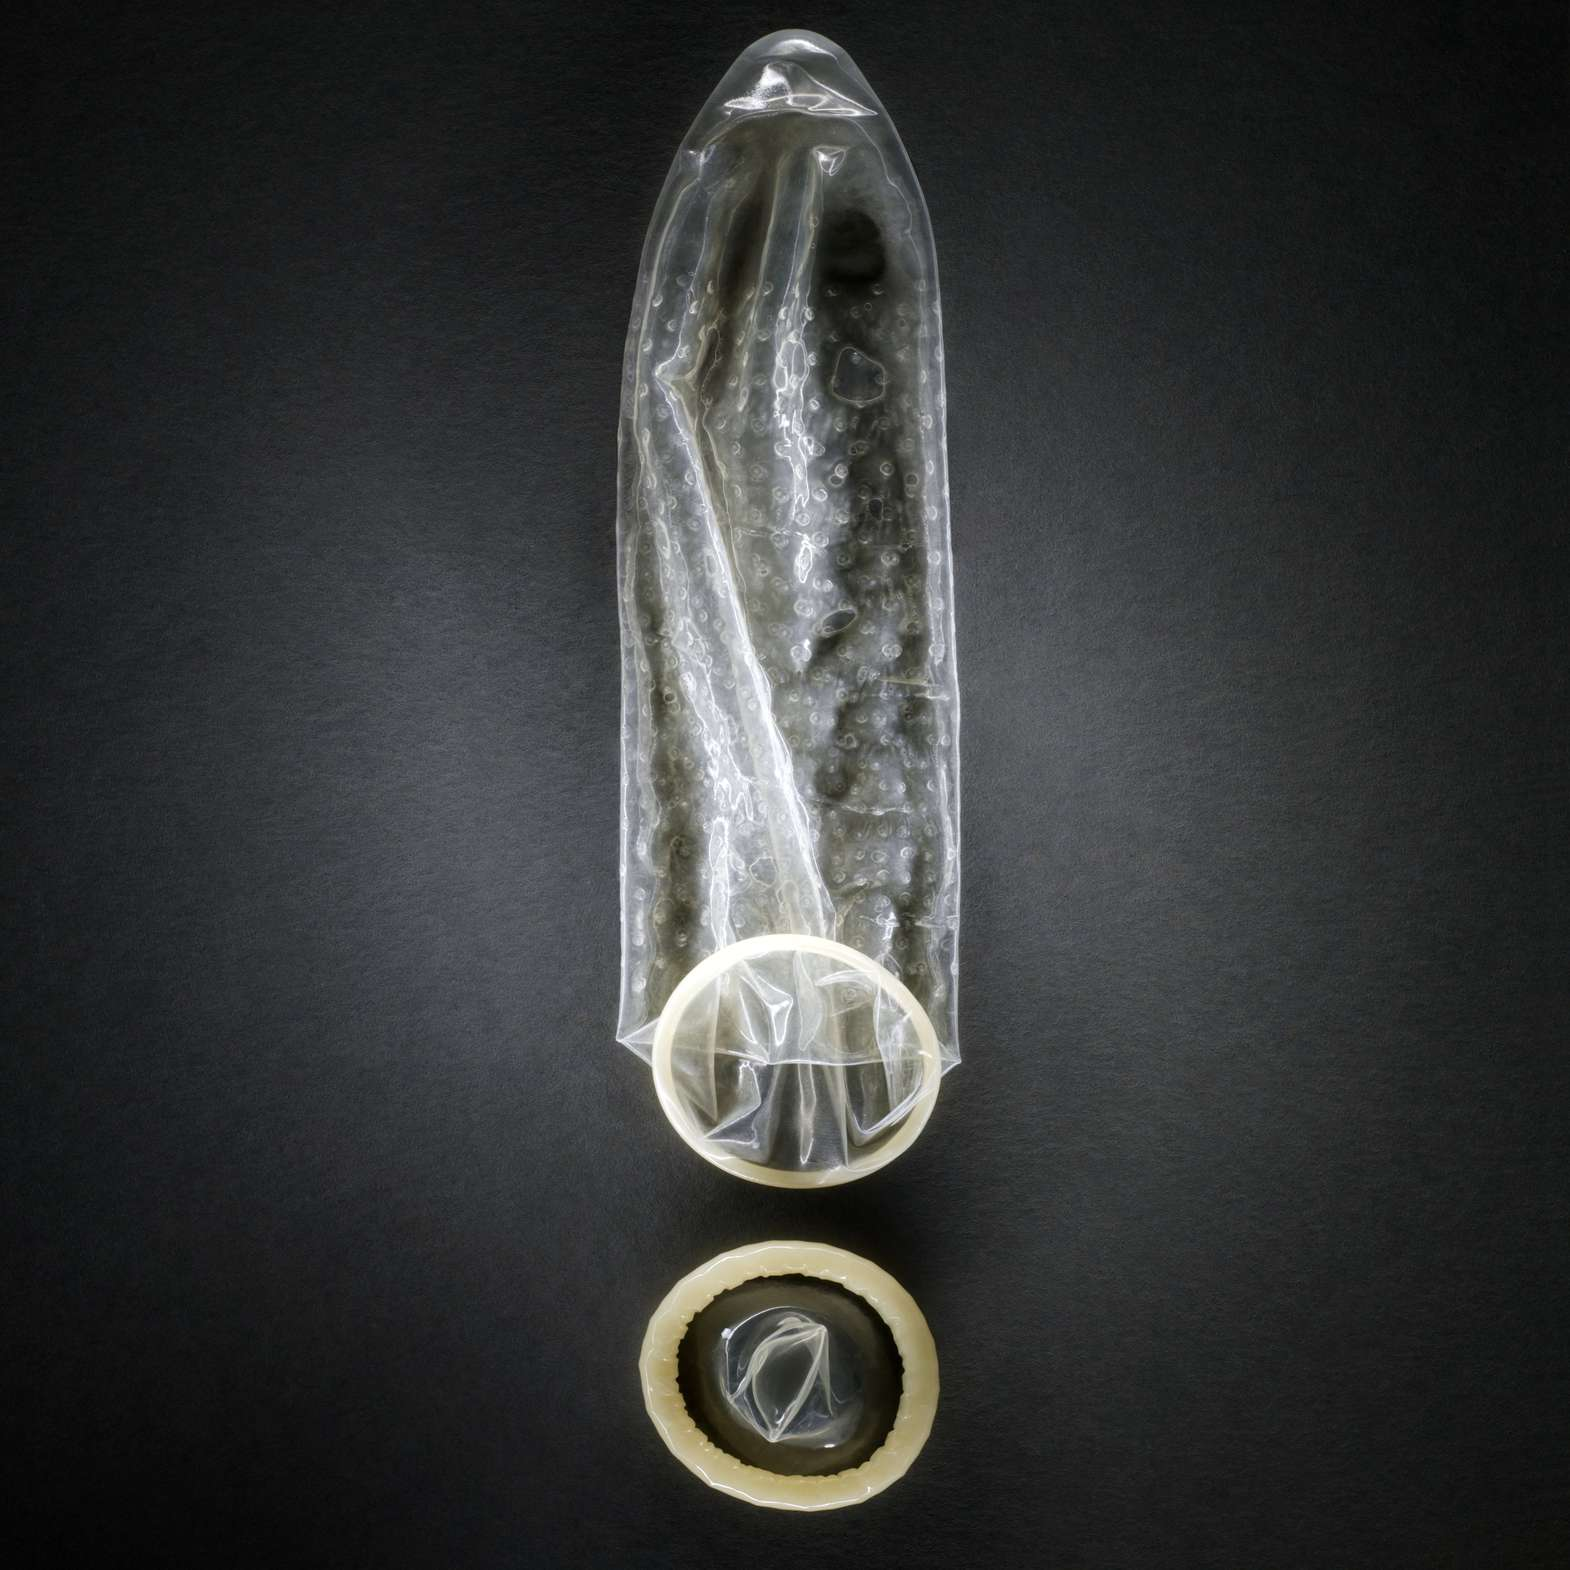 Condom Myth: Using Two Condoms Provide Better Protection Than Just One